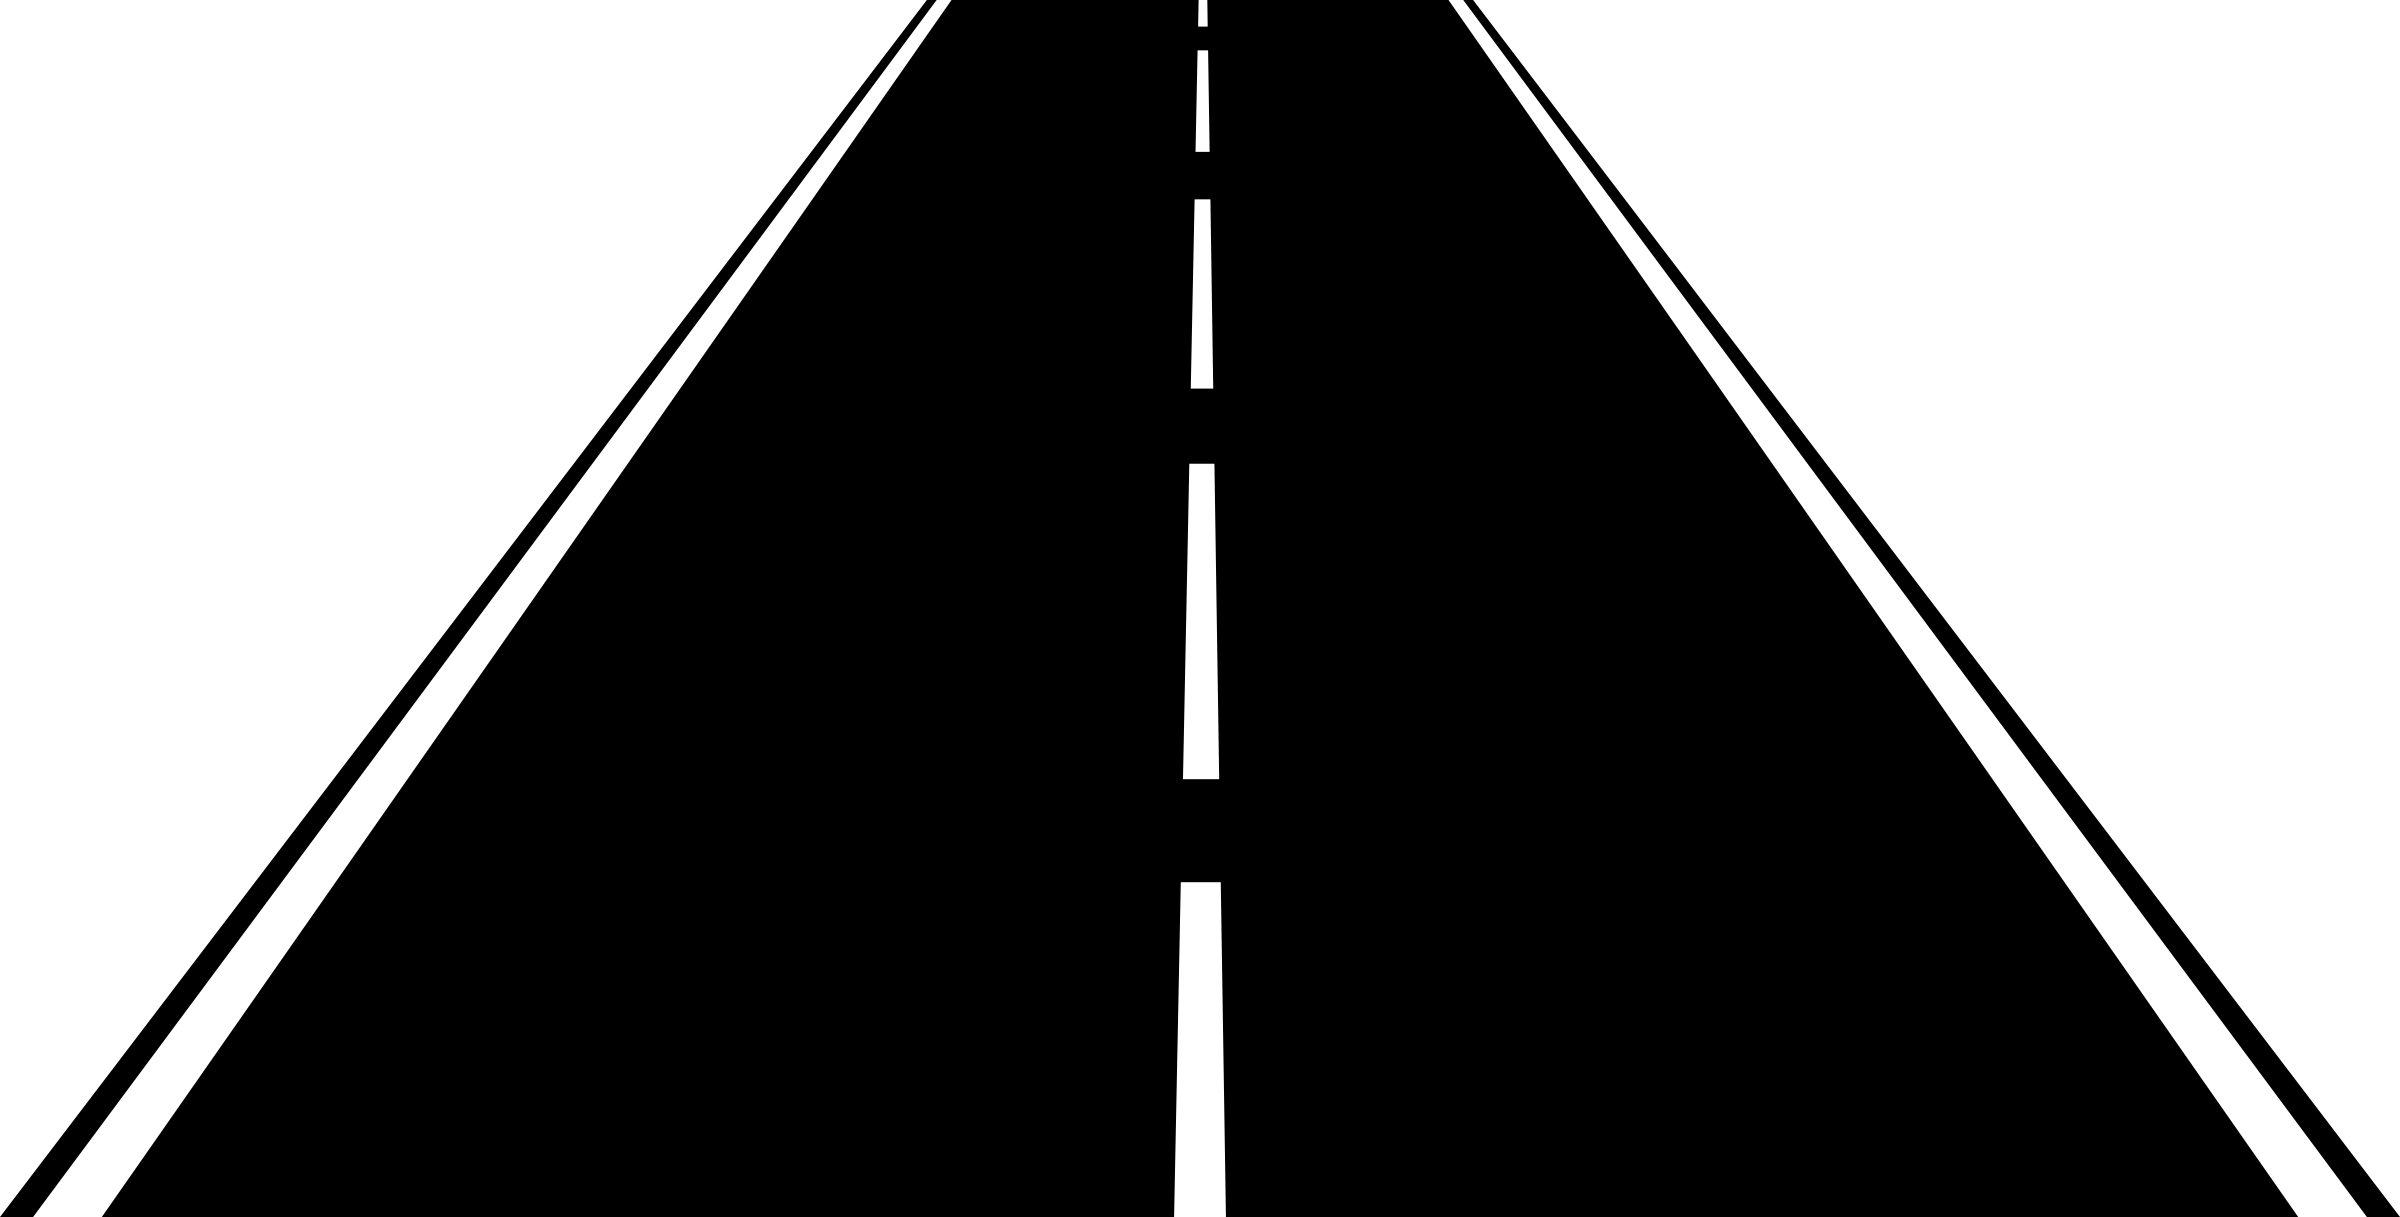 Straight clipart main road. Other wallpaper wallpapers high